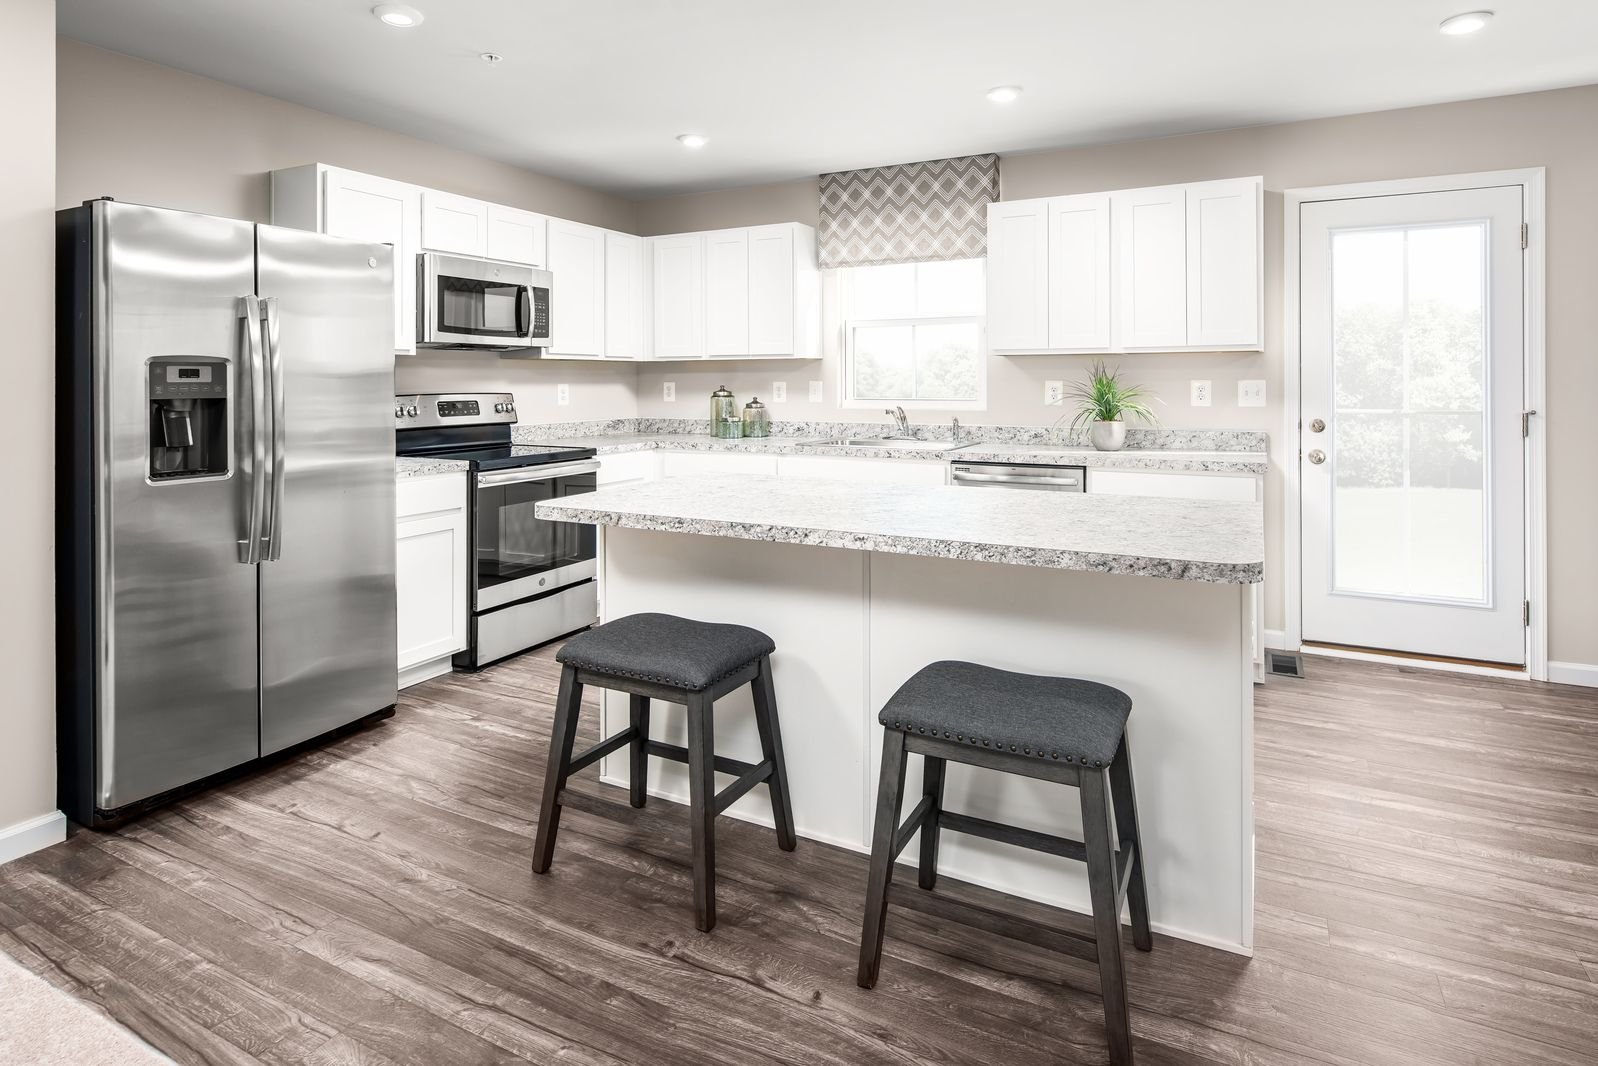 Own for Less than Rent at Oakmont!:Build a brand new home with Fishers convenience at a price you can afford. 1.5 miles to I-69 & Hamilton Town Center, from the low $200s.Click here tolearn more about our Spring delivery homes.